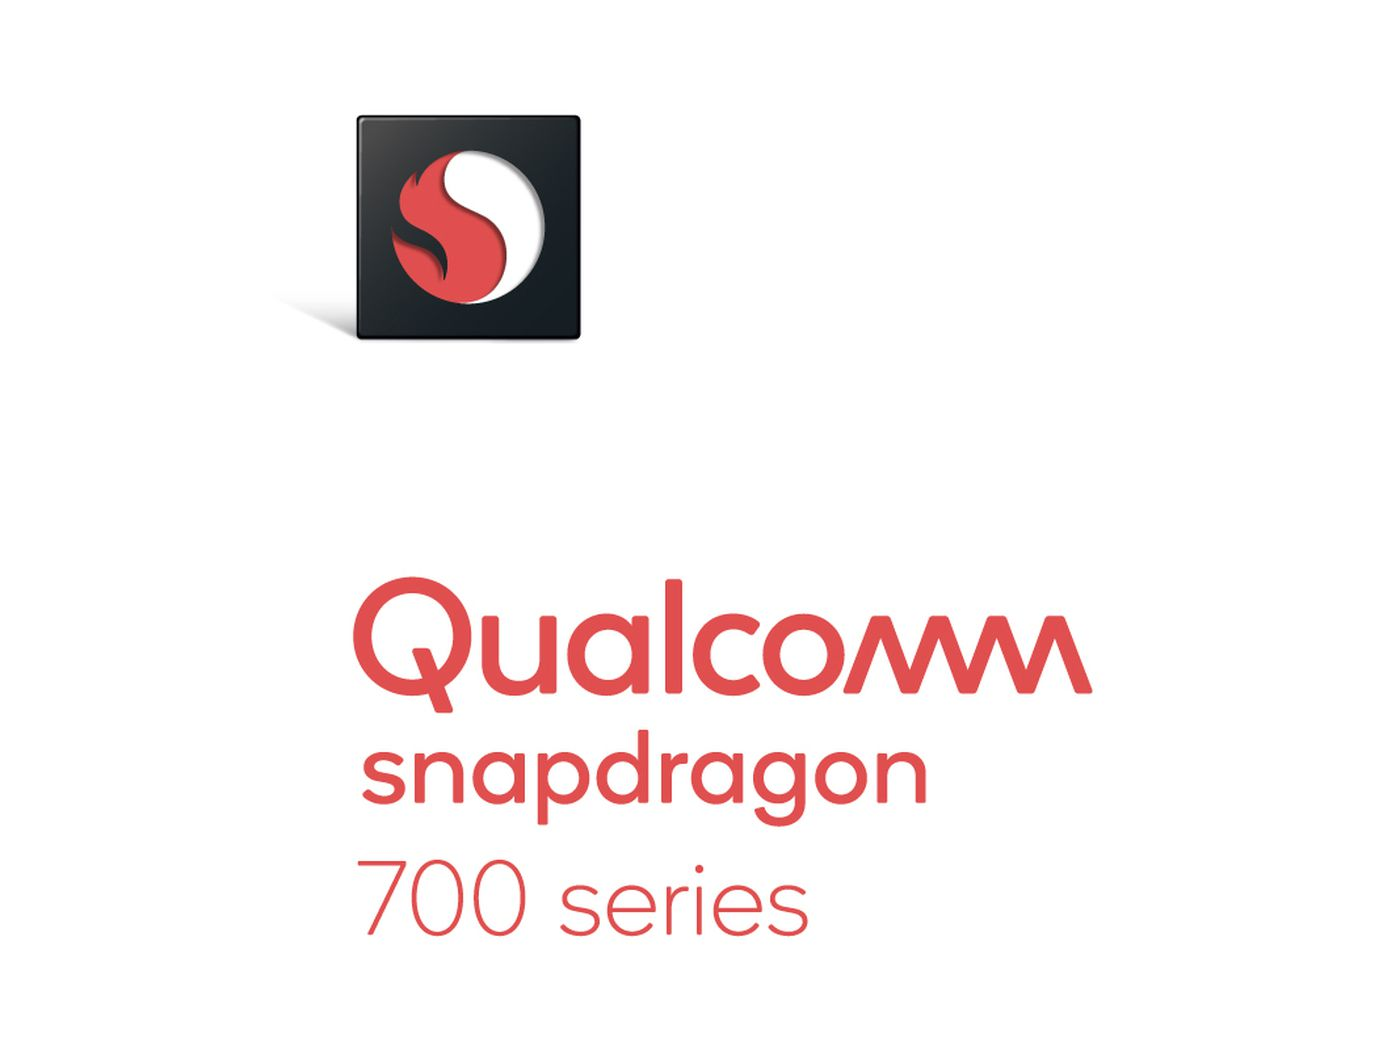 Qualcomm is making midrange Android phones more powerful with its new Snapdragon 710 chip - The Verge